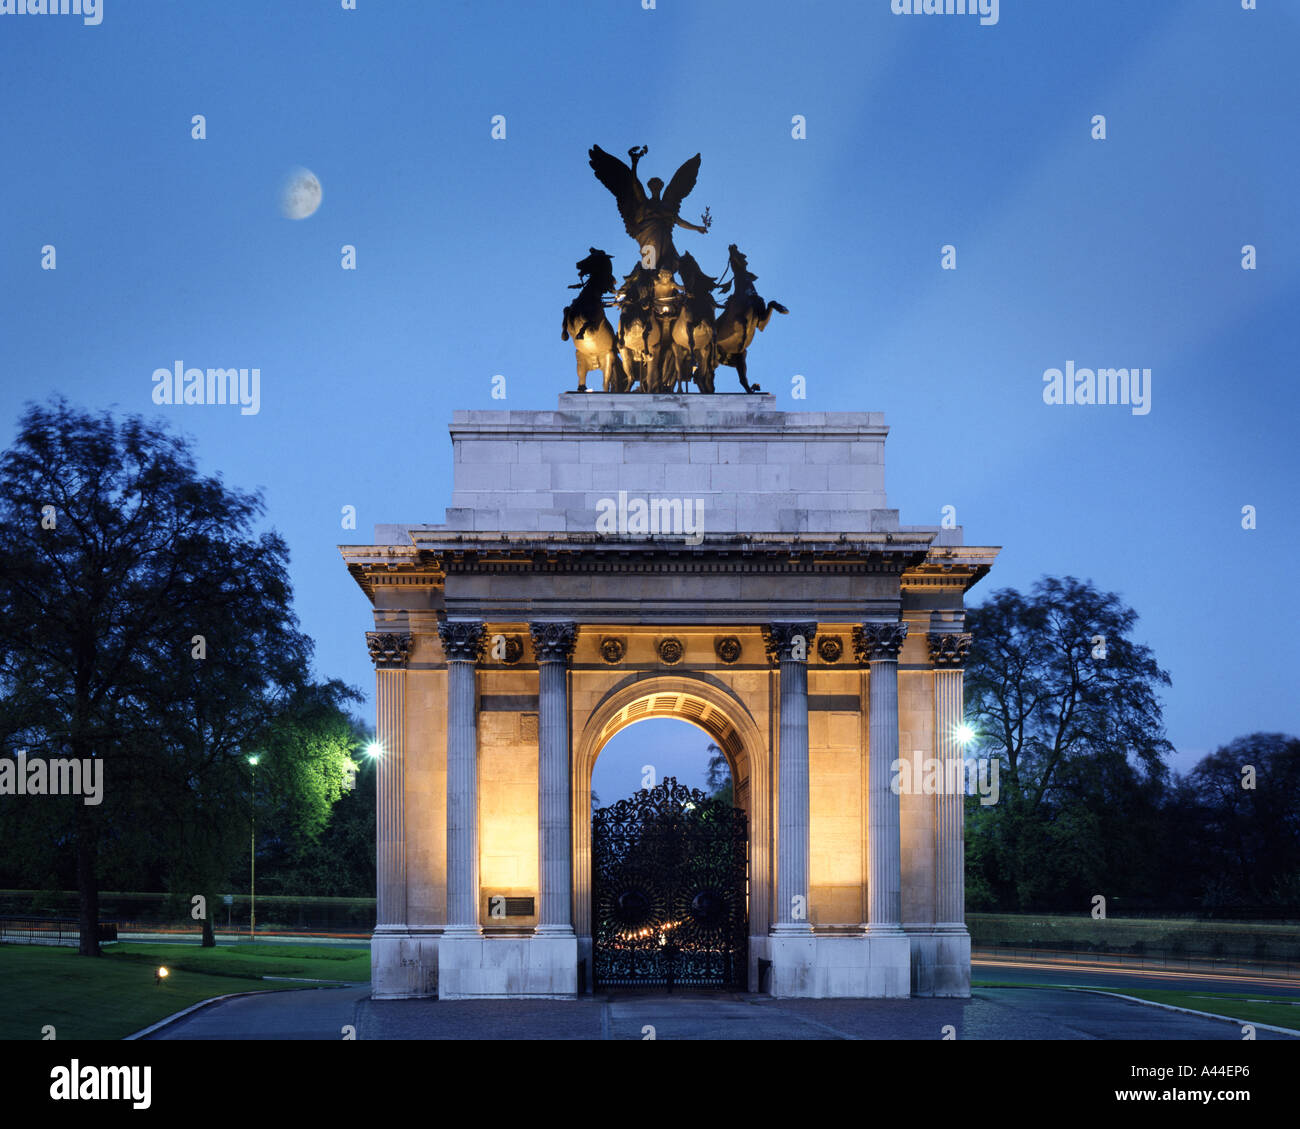 GB - LONDON: Wellington Arch at Hyde Park - Stock Image